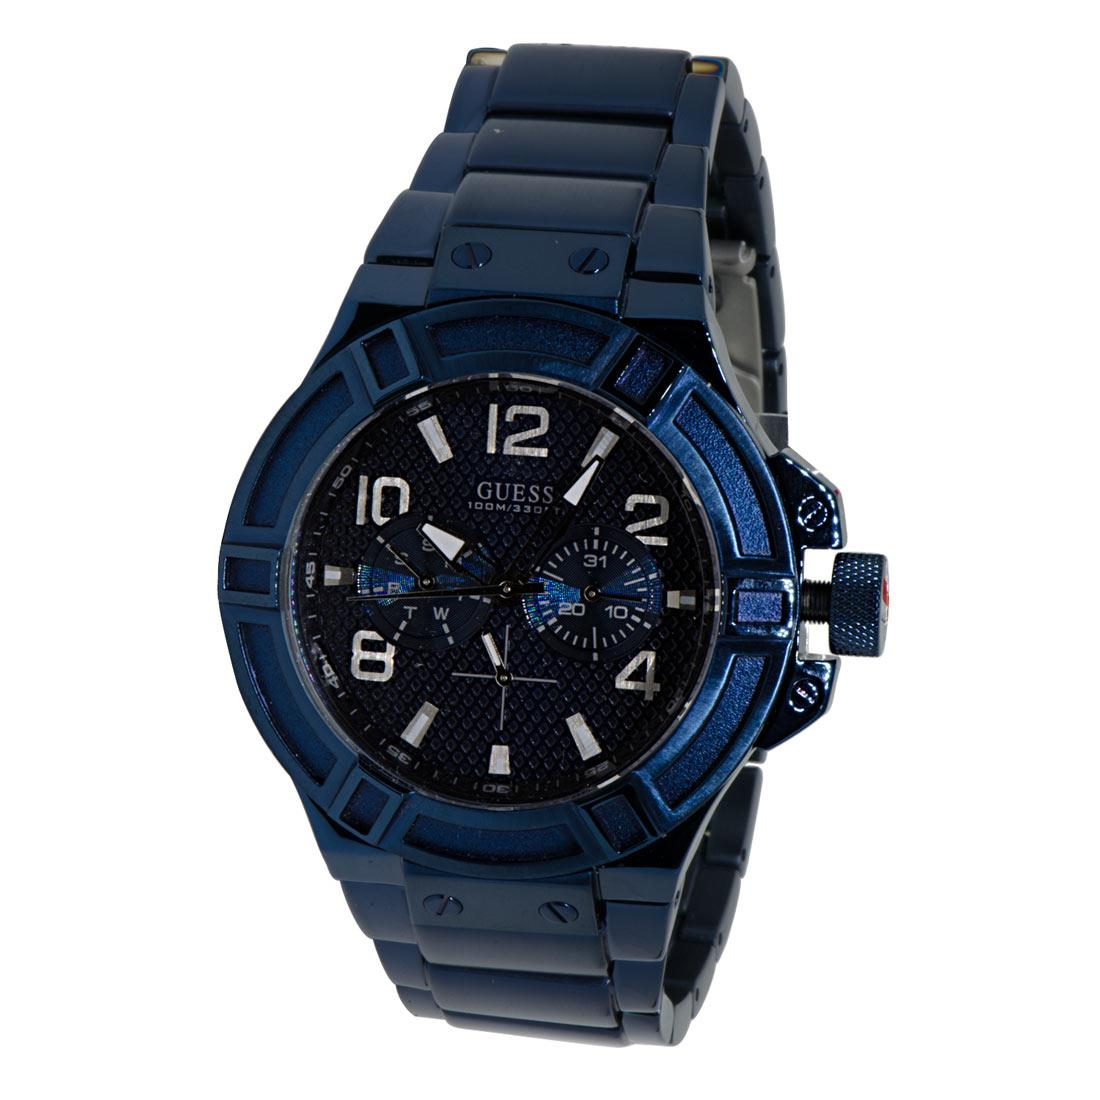 Orologio Guess 45 mm - GUESS